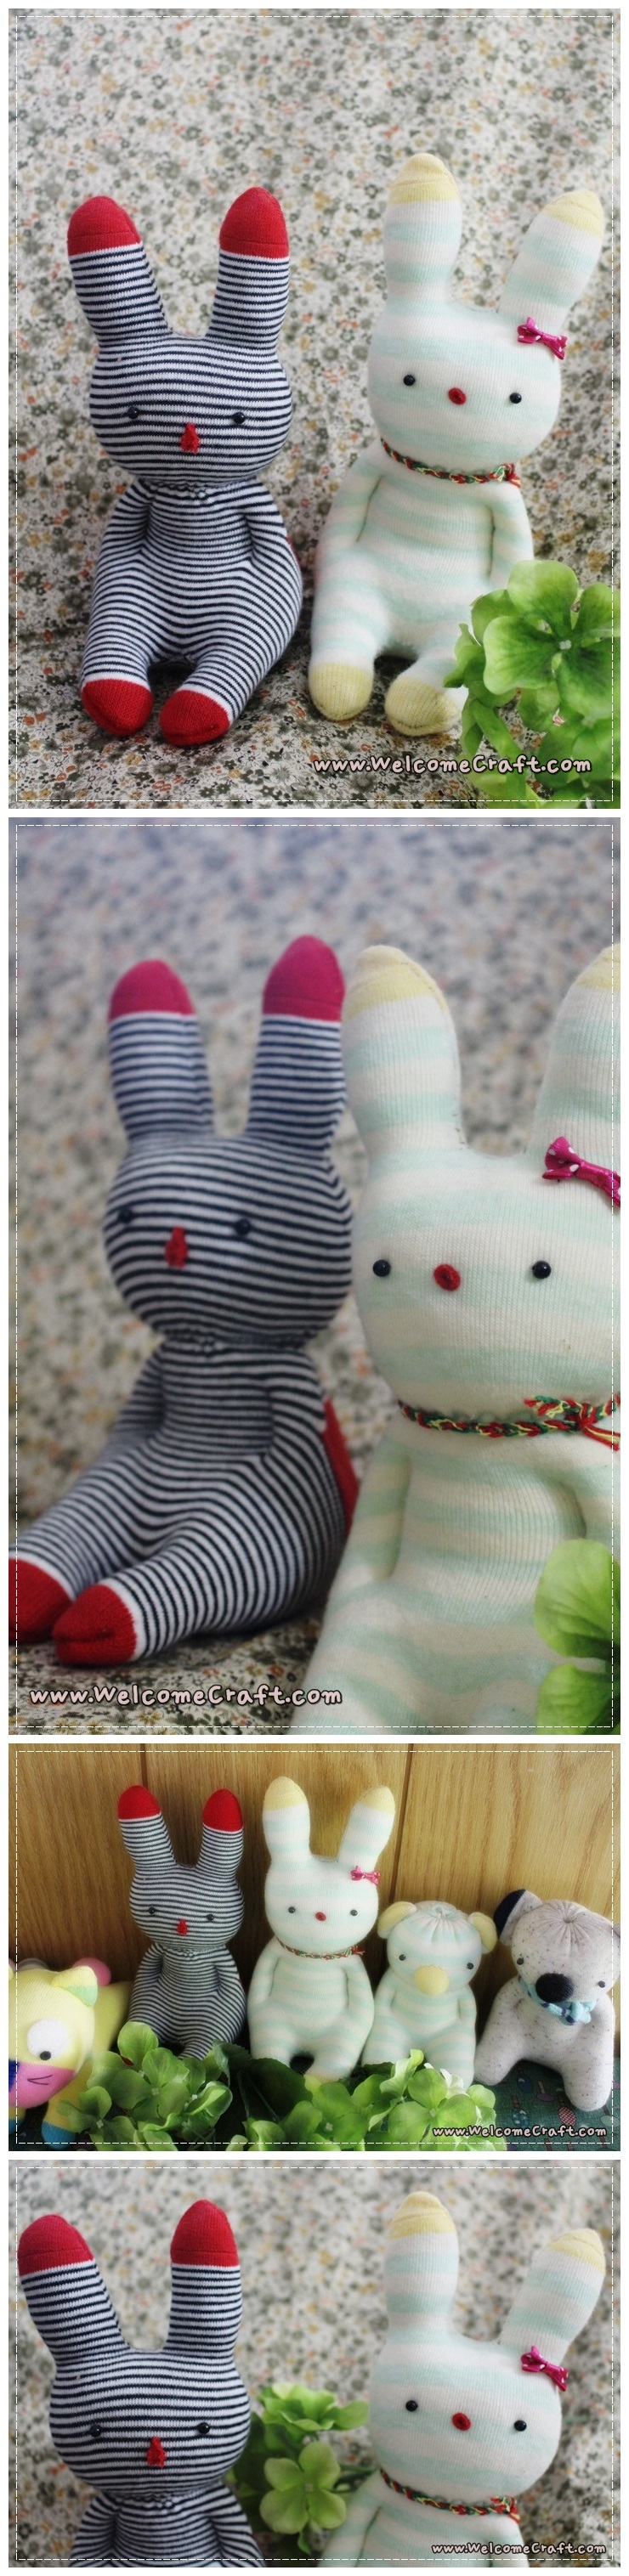 Sock Doll Easter Bunny